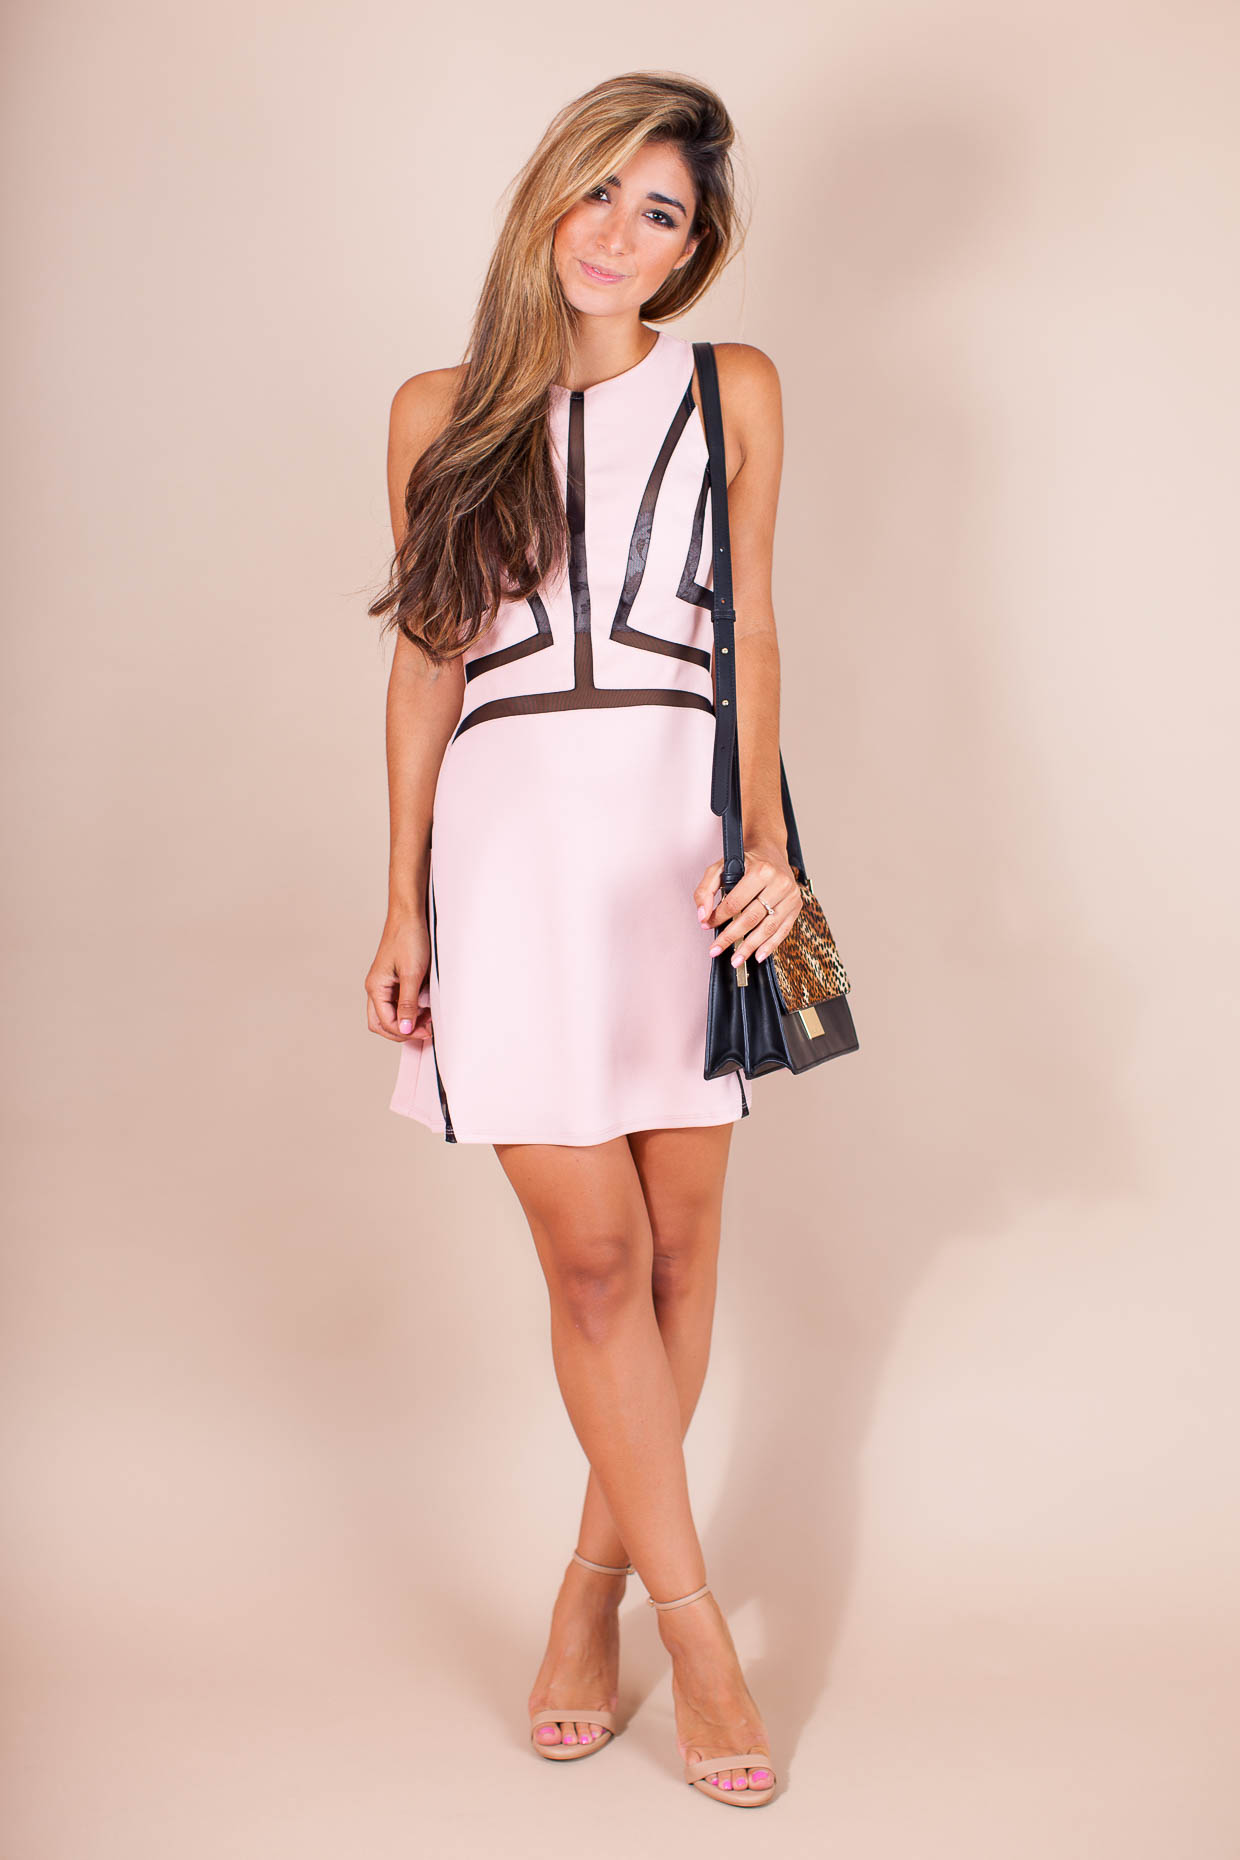 Fashion Blogger The Darling Detail is wearing a Topshop Contrast Sleeveless A-Line Dress with Steve Madden 'Stecy' Sandals and a Vince Camuto 'Abril' Leather Shoulder Bag.